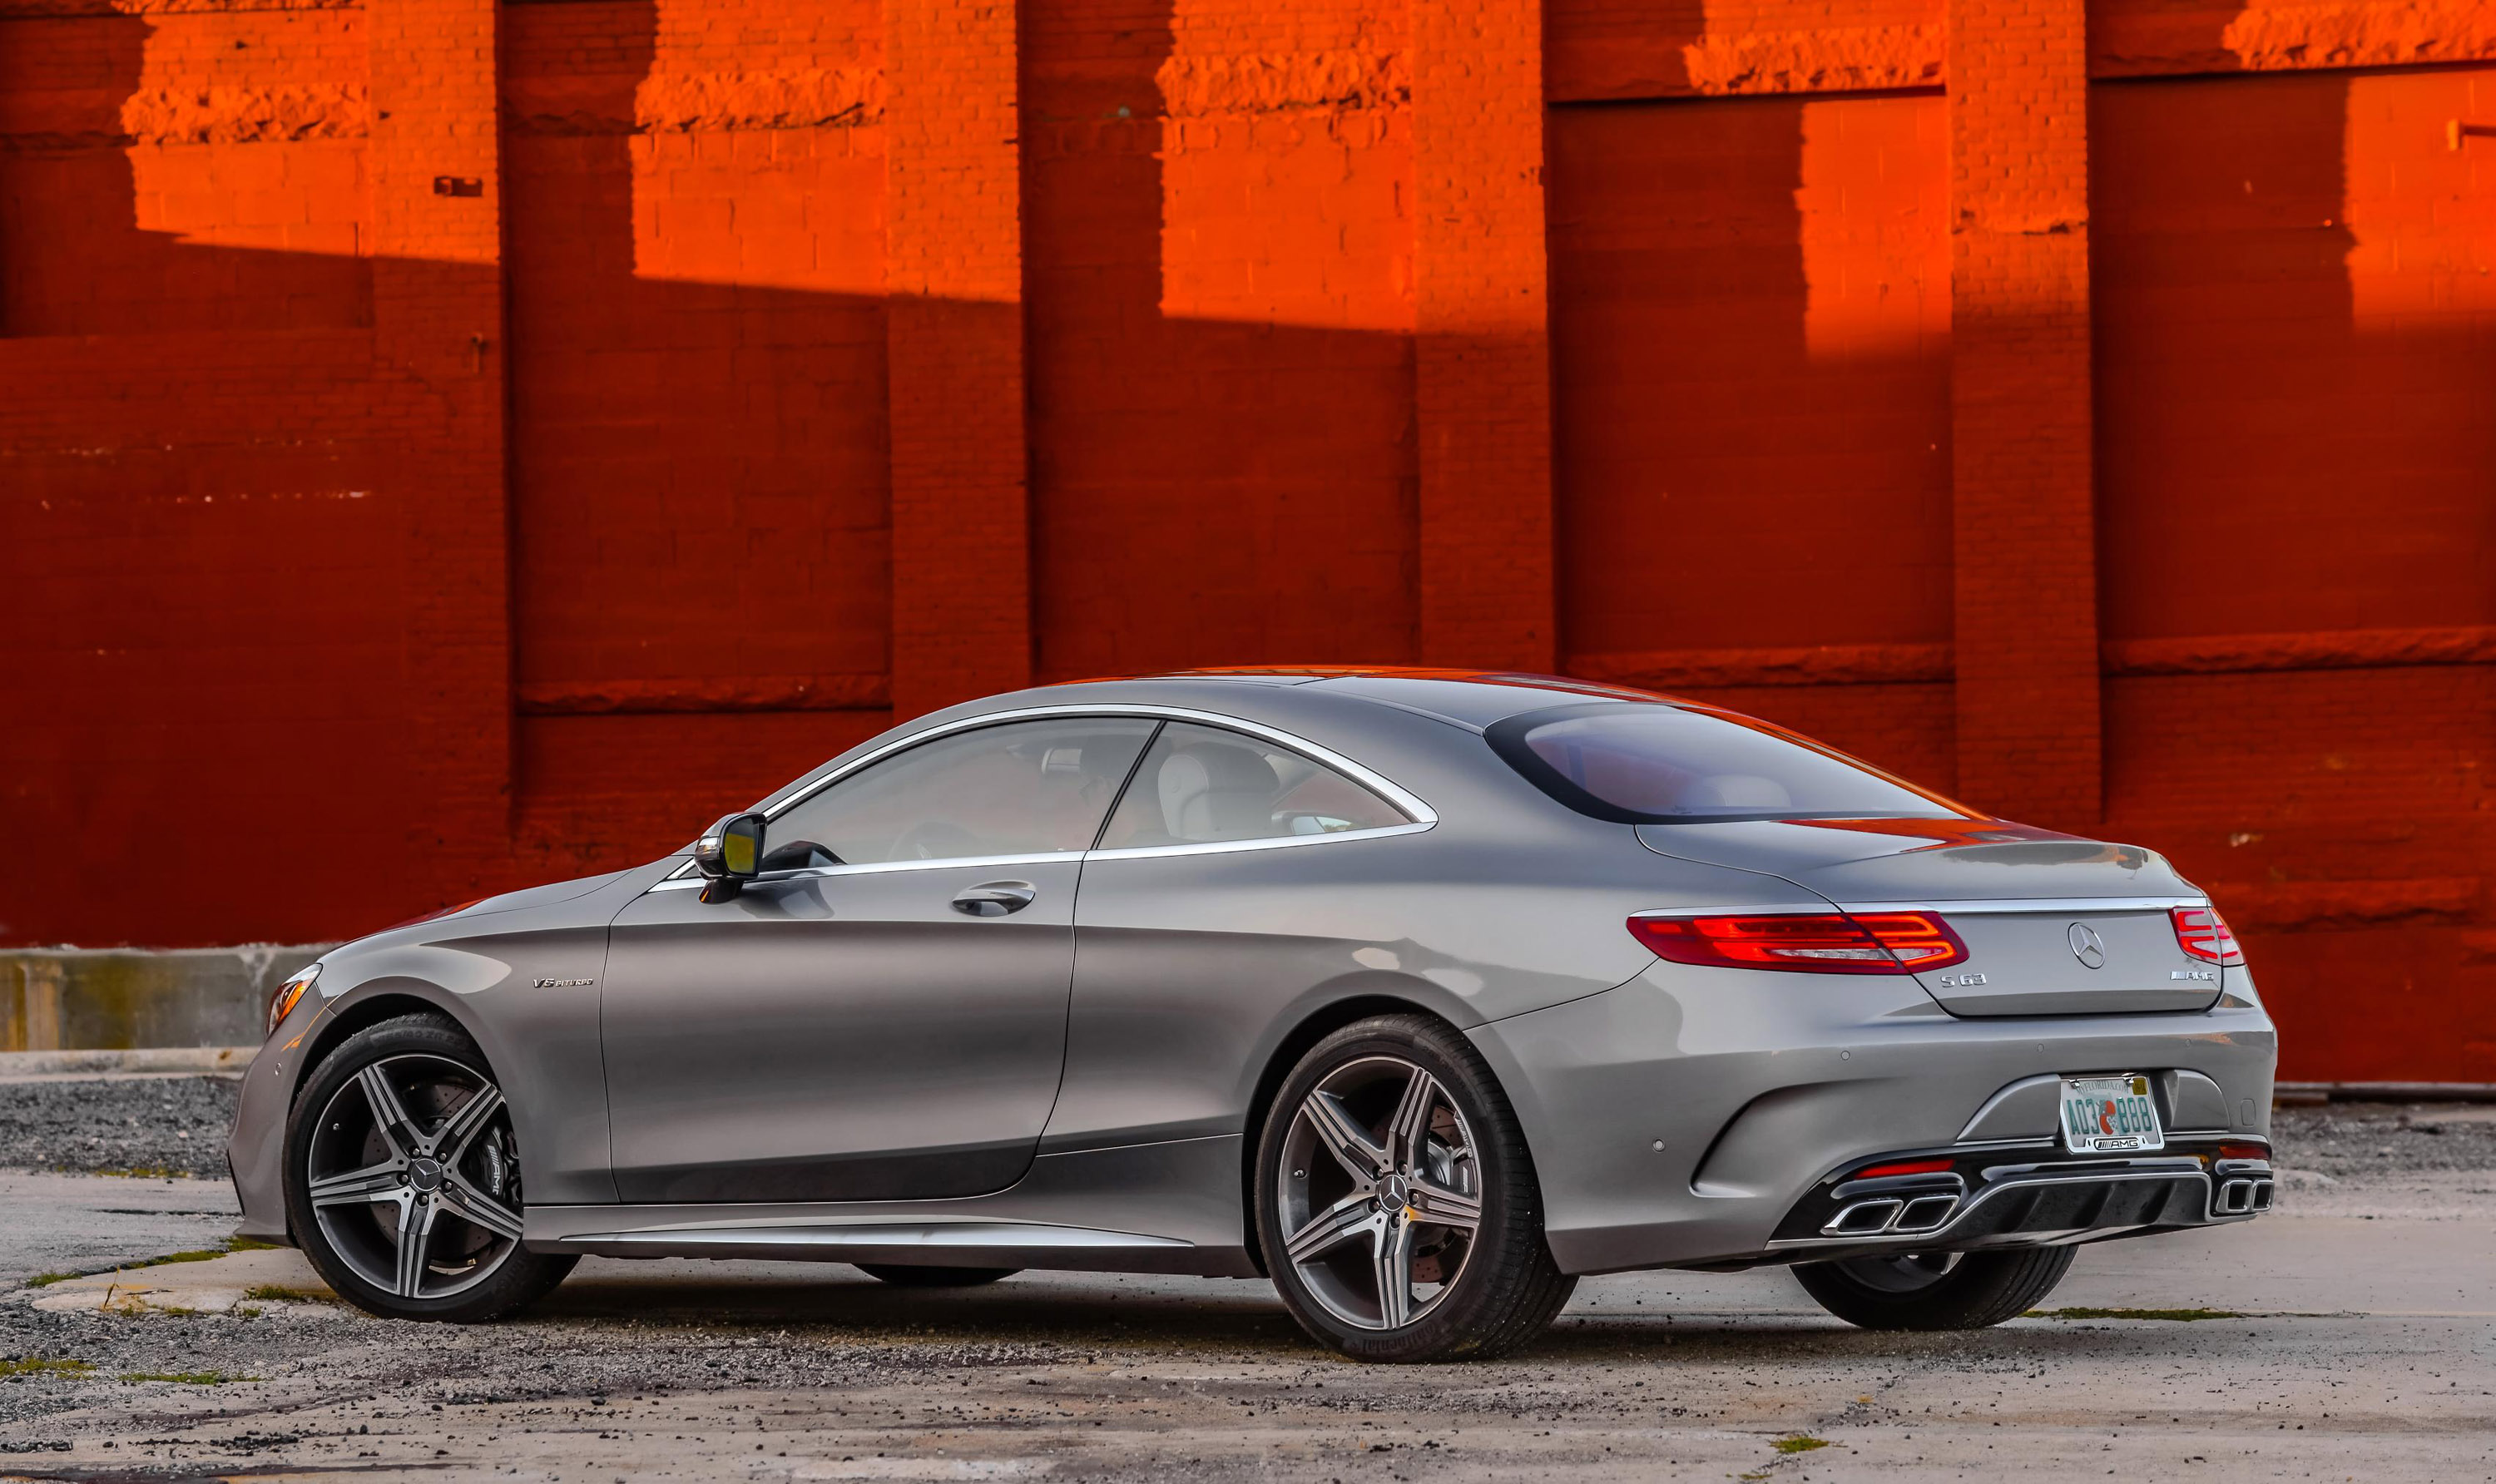 S Class Coupe >> Meet the new 2015 Mercedes-Benz S63 AMG 4MATIC Coupe